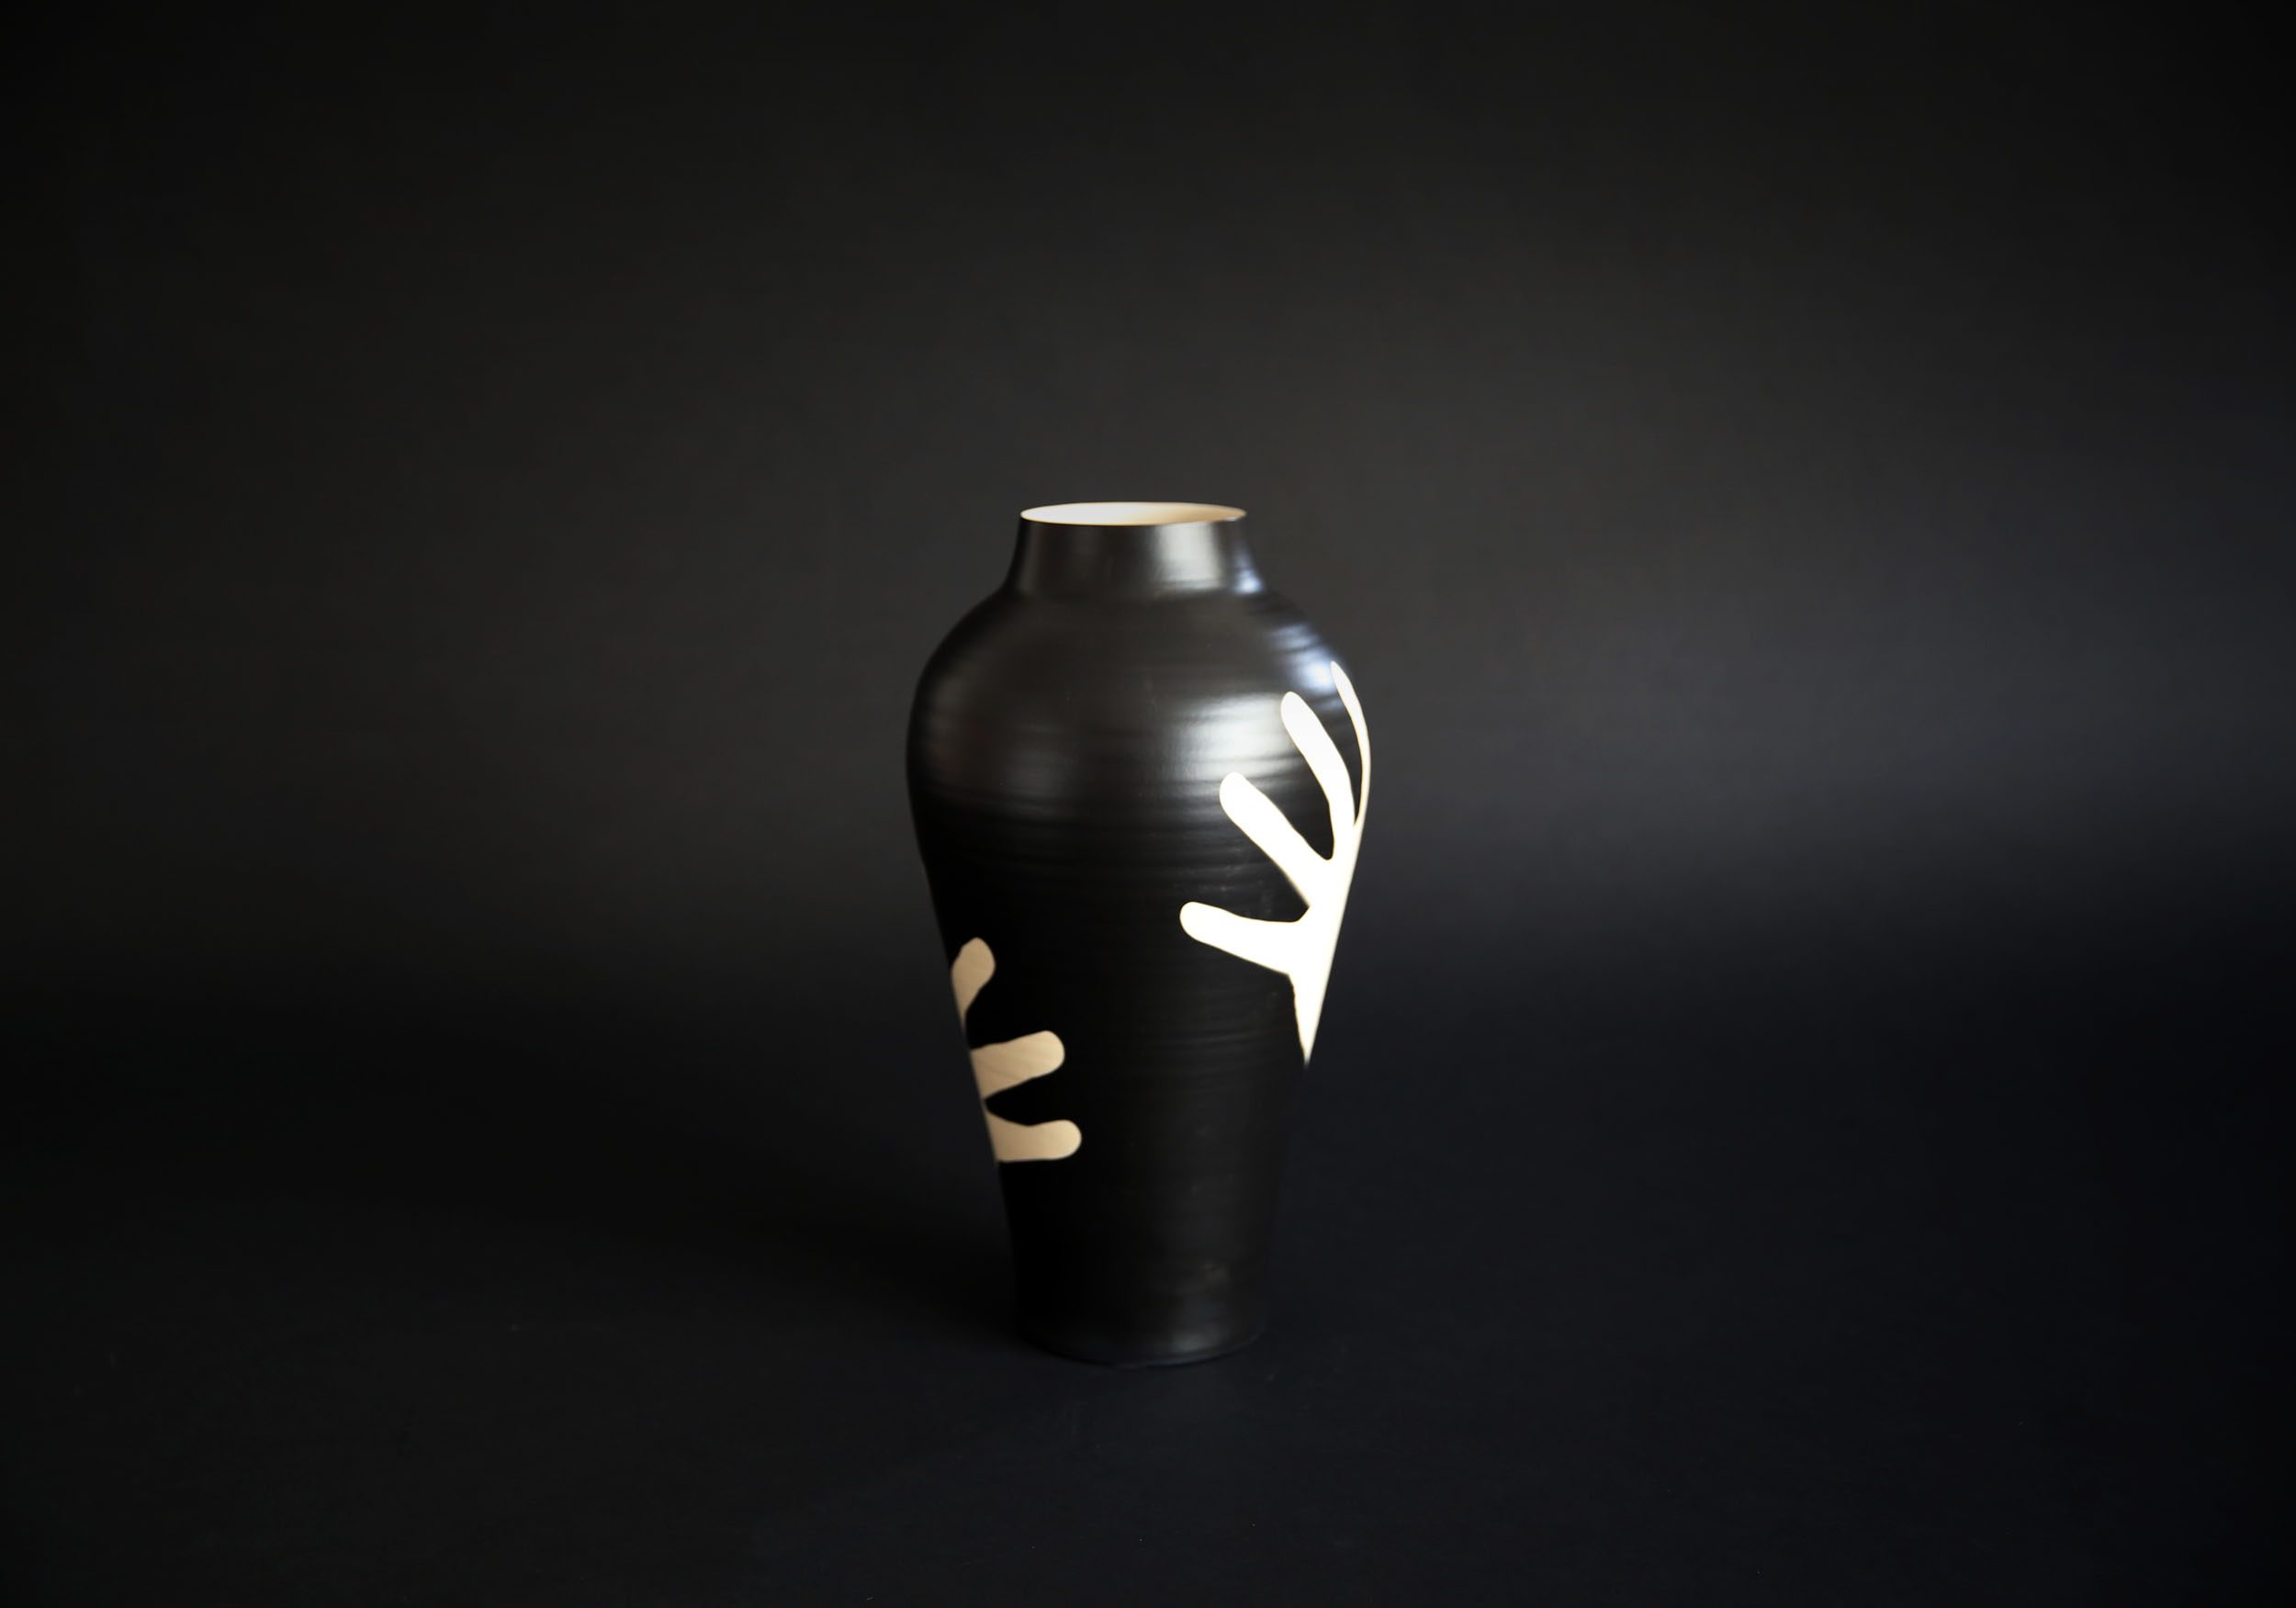 A Hold Me vase